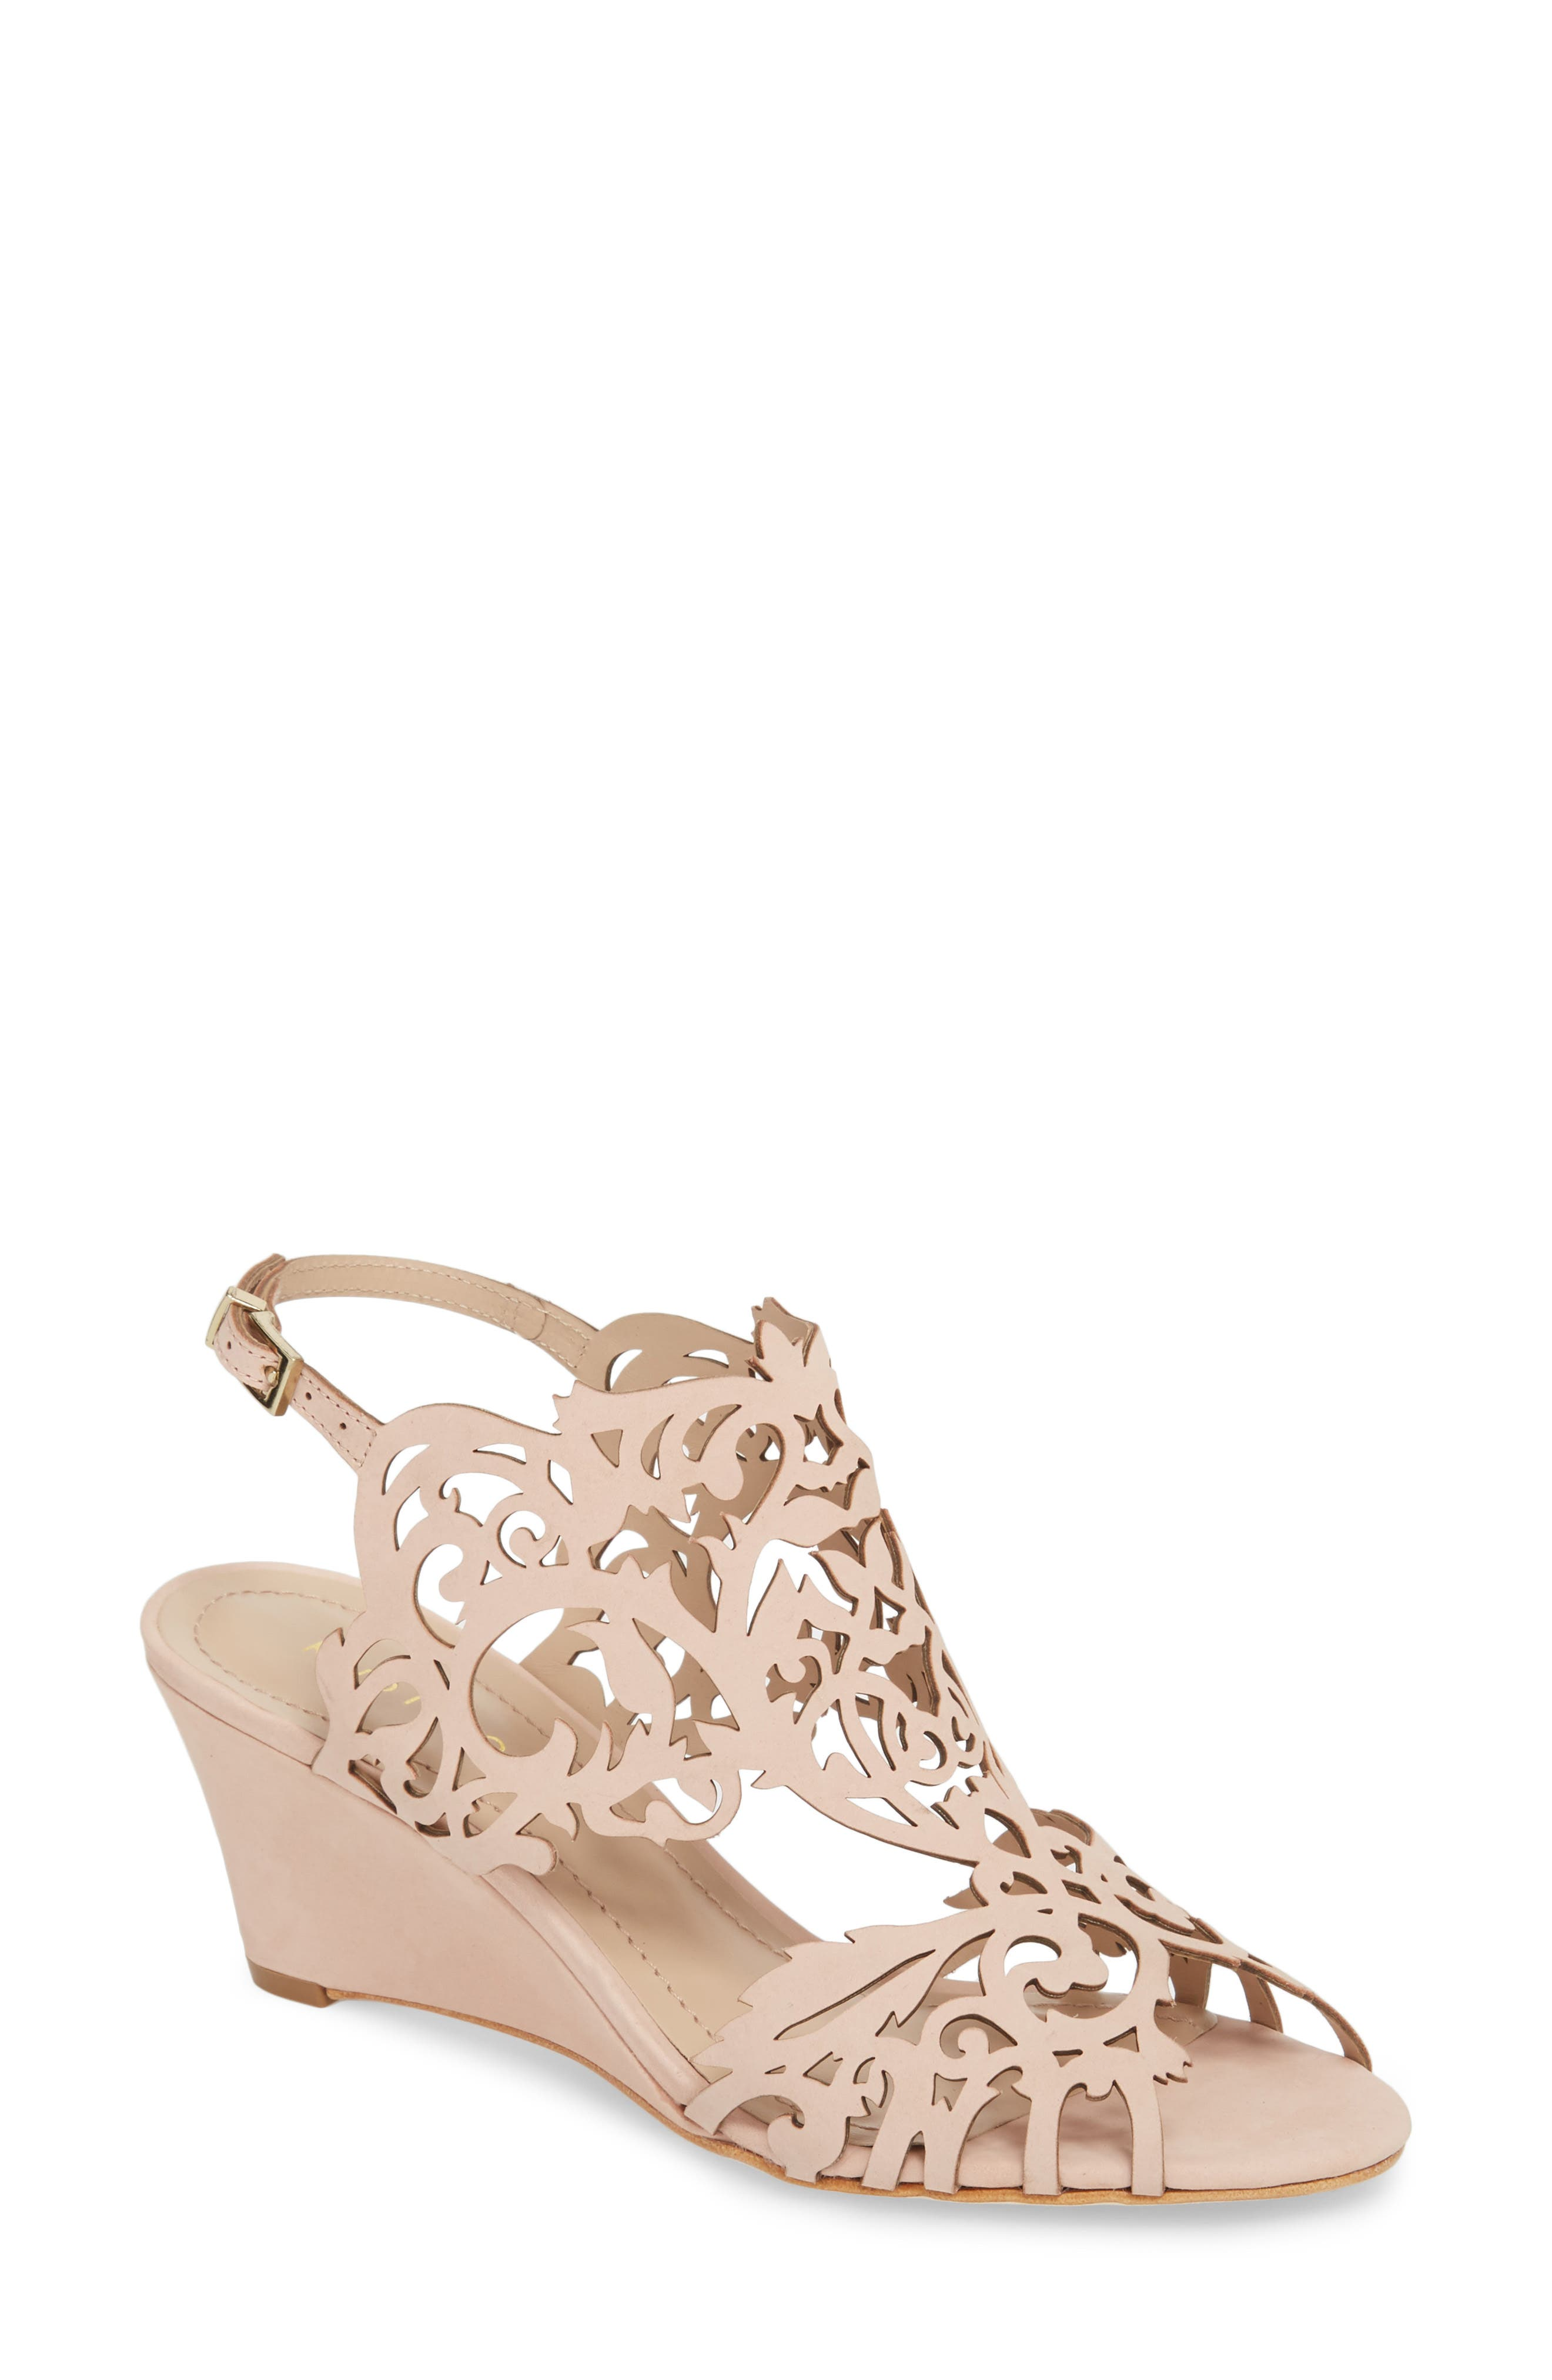 Marcela Laser Cutout Wedge Sandal,                             Main thumbnail 1, color,                             Blush Leather